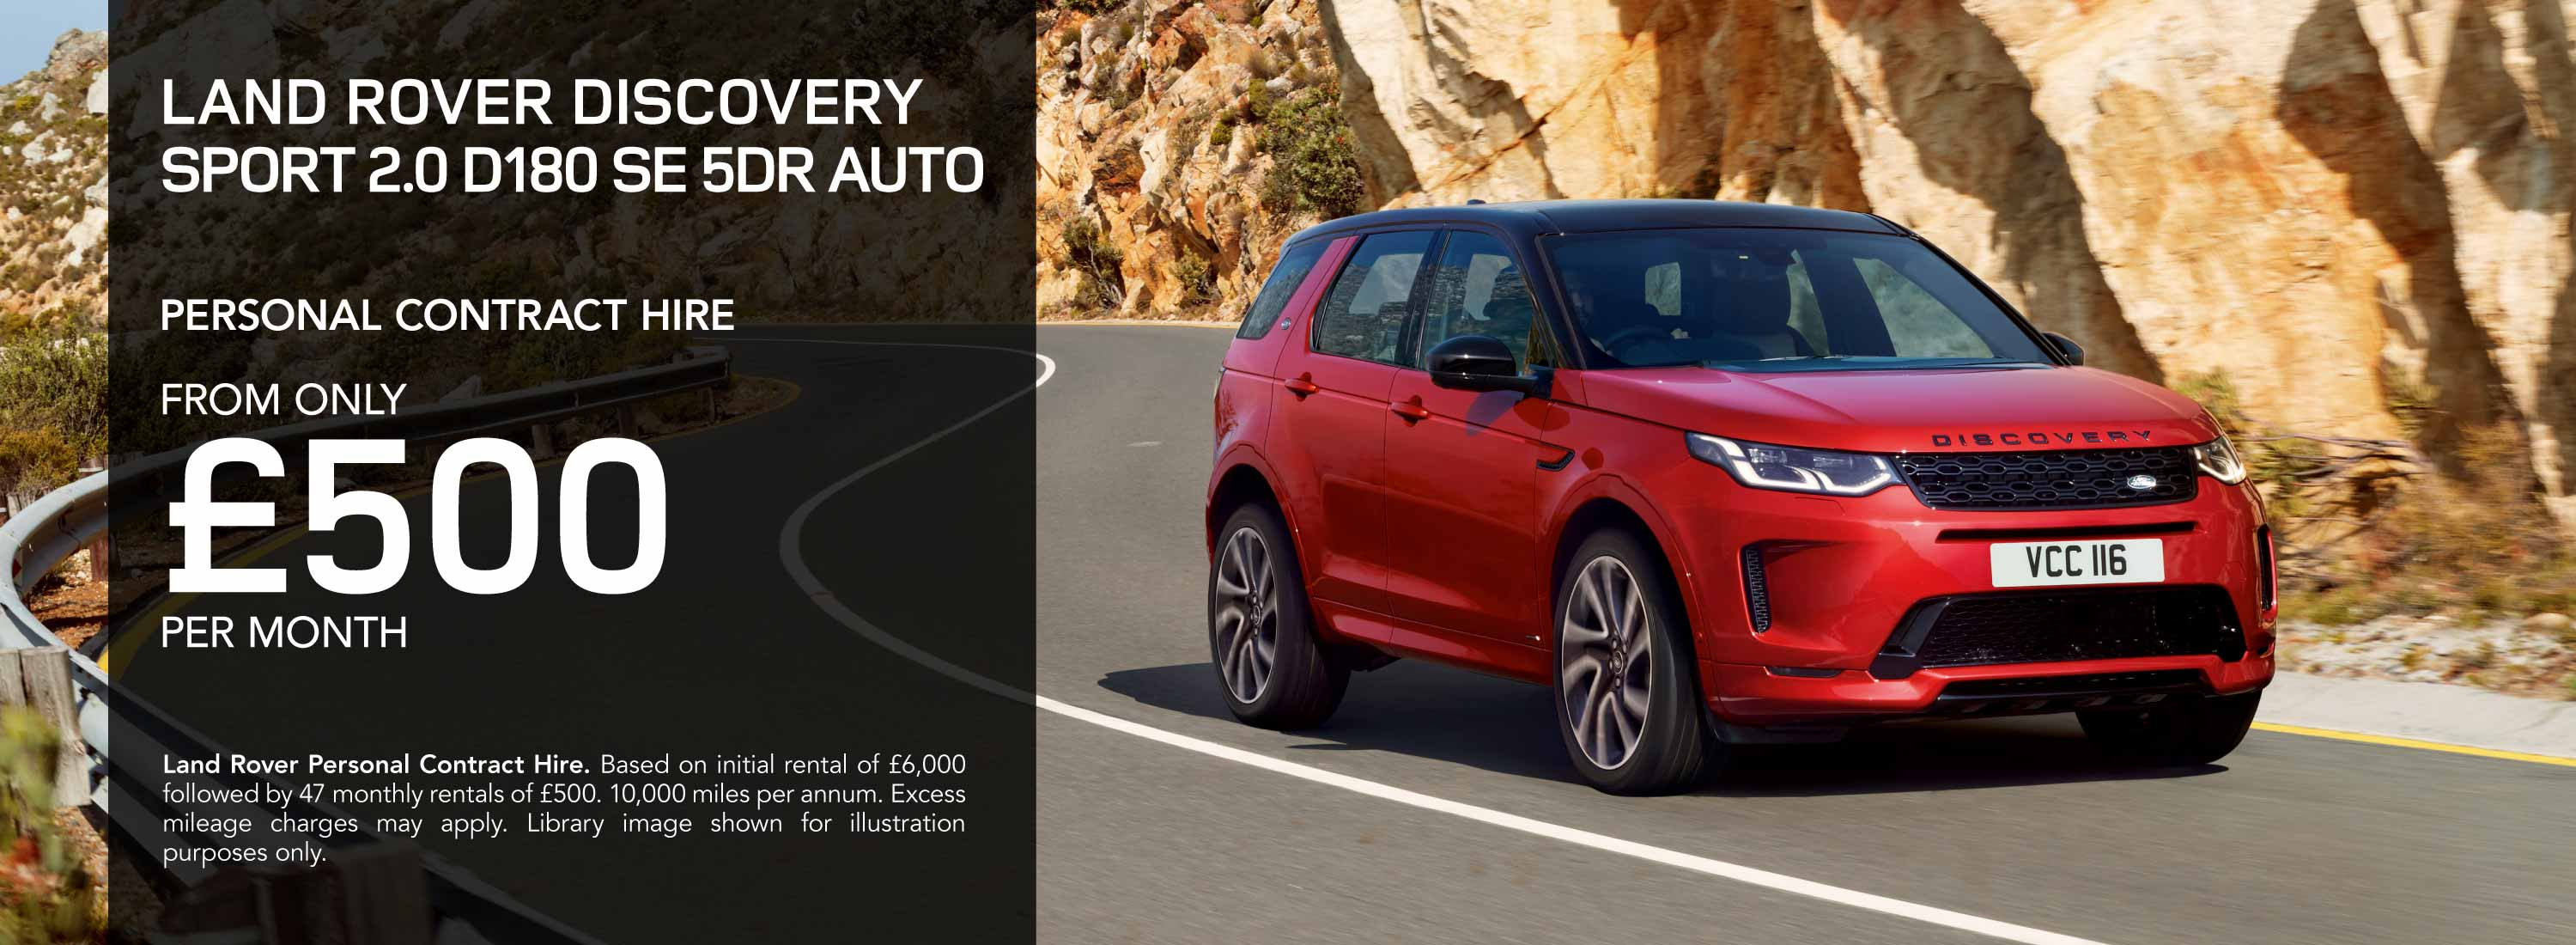 Discovery Sport Personal Contract Hire Offer